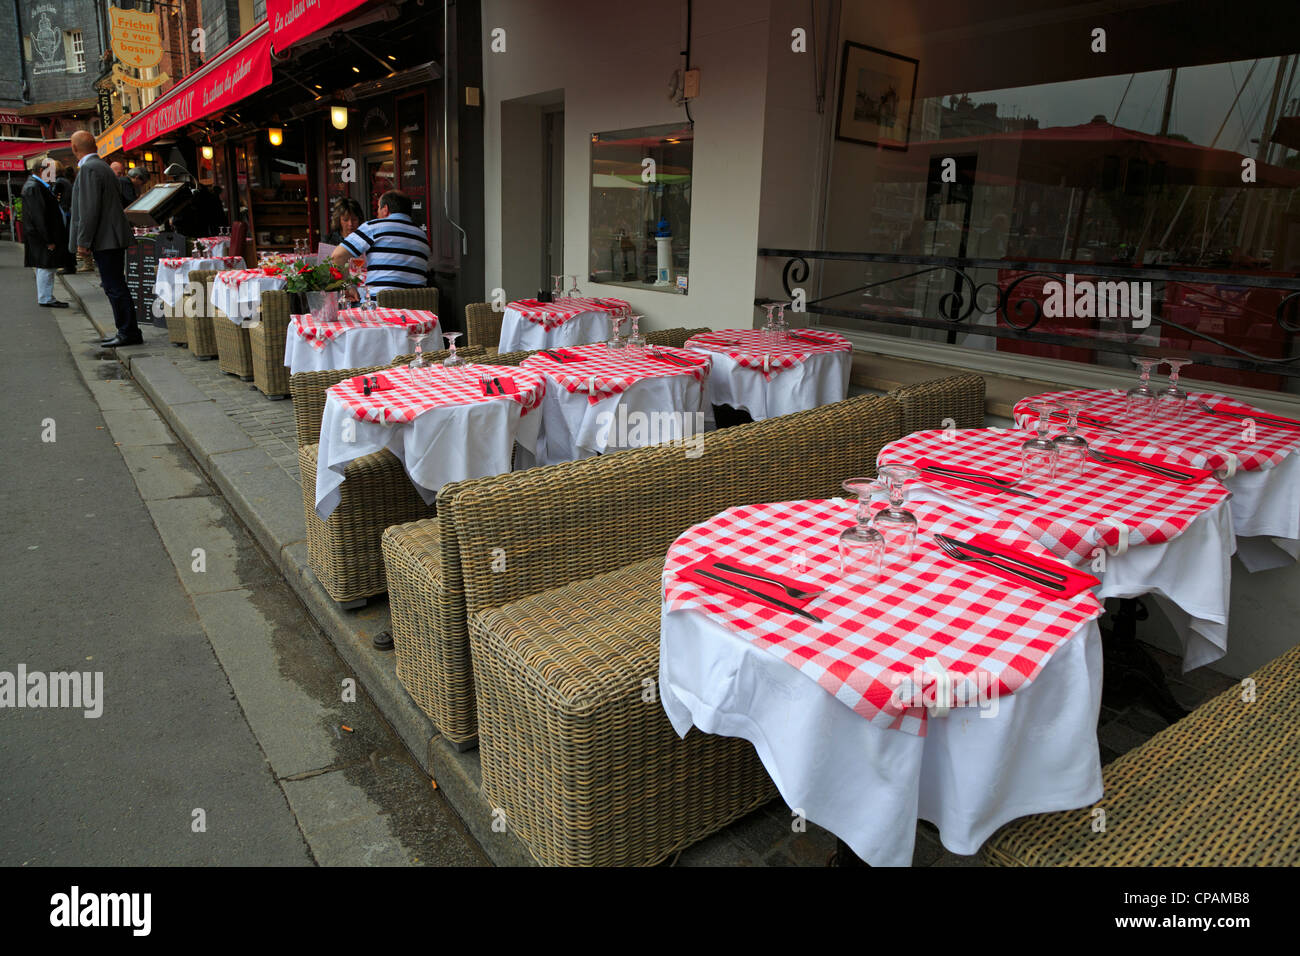 Lovely Cheerful Red And White Check Tablecloths Of A Bistro Alongside The Wharf.